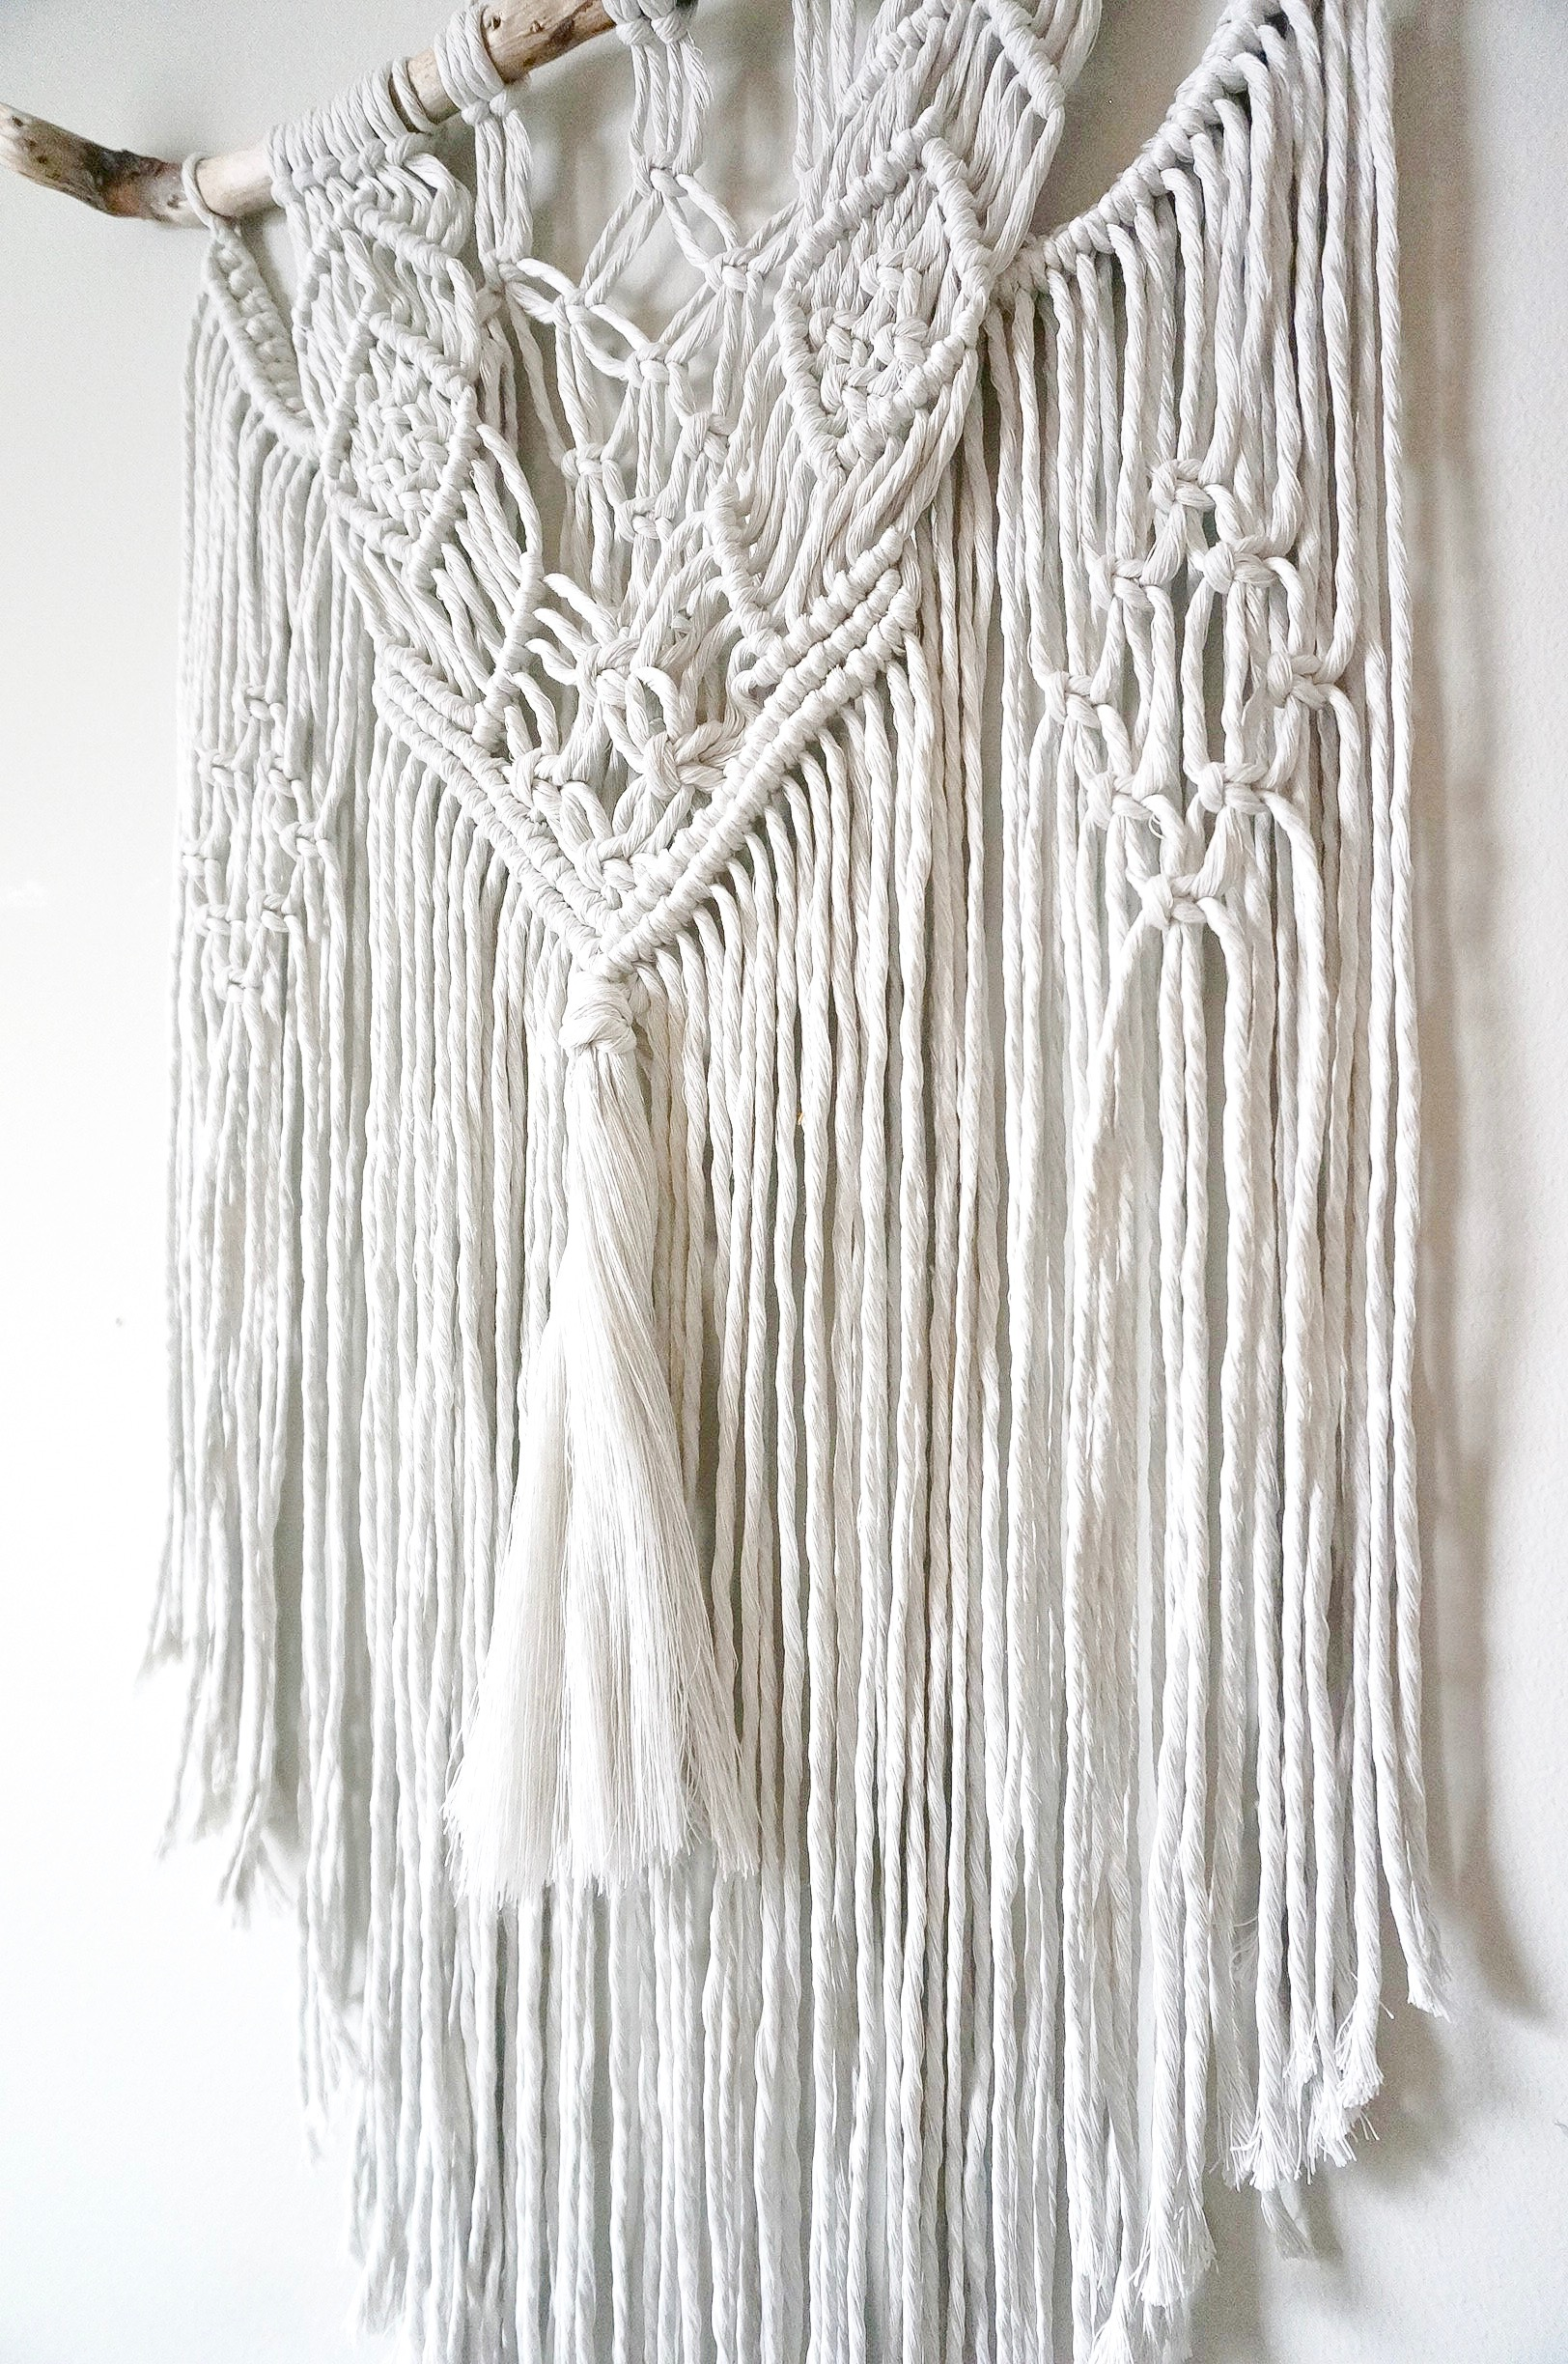 $70  |  Medium Macrame Wall Hanging  |  Silver Gray